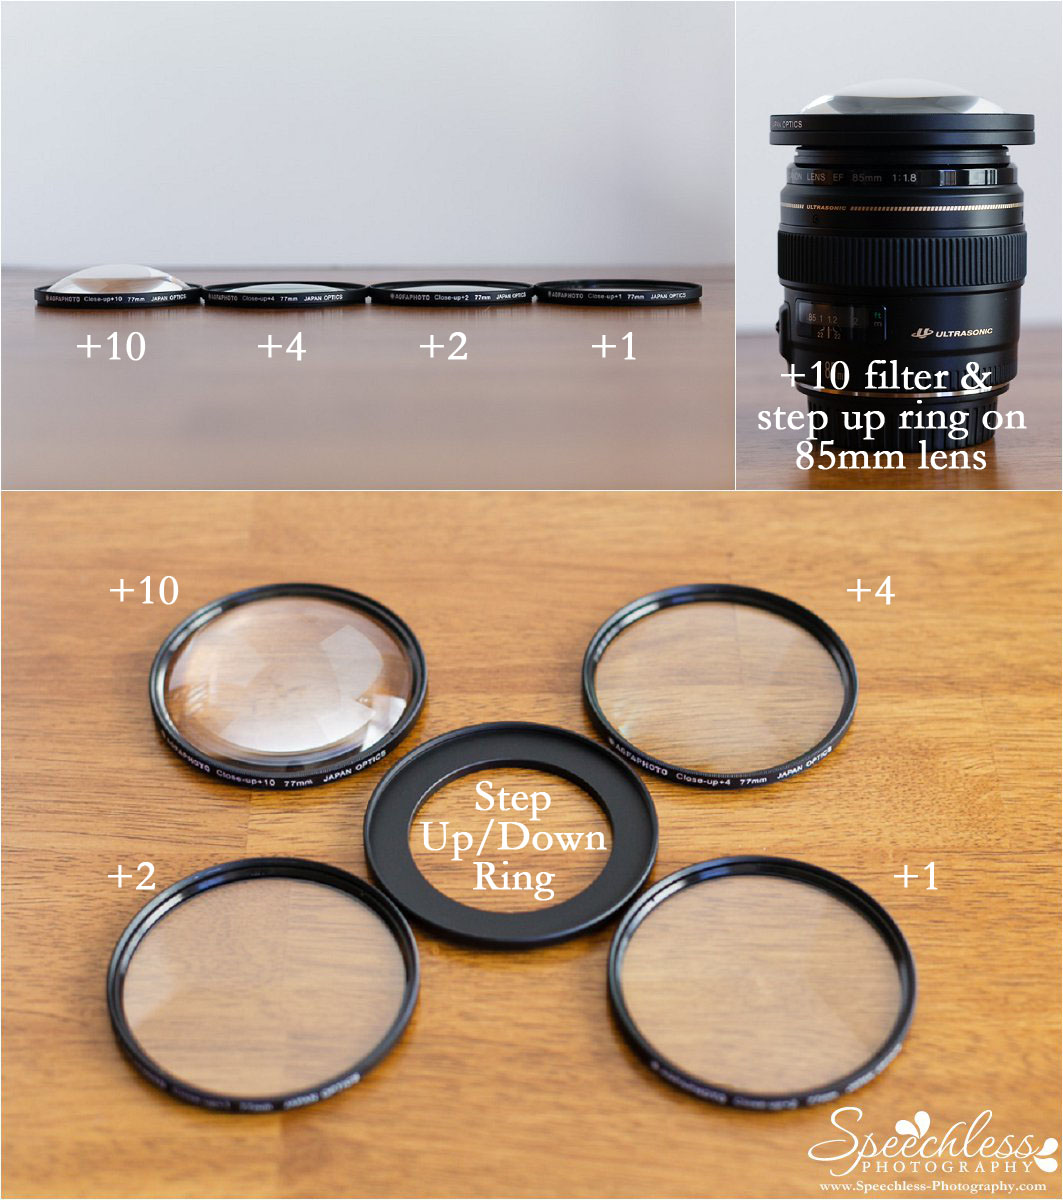 Macro Filter Set, +10 filter on Canon 85mm f/1.8 lens